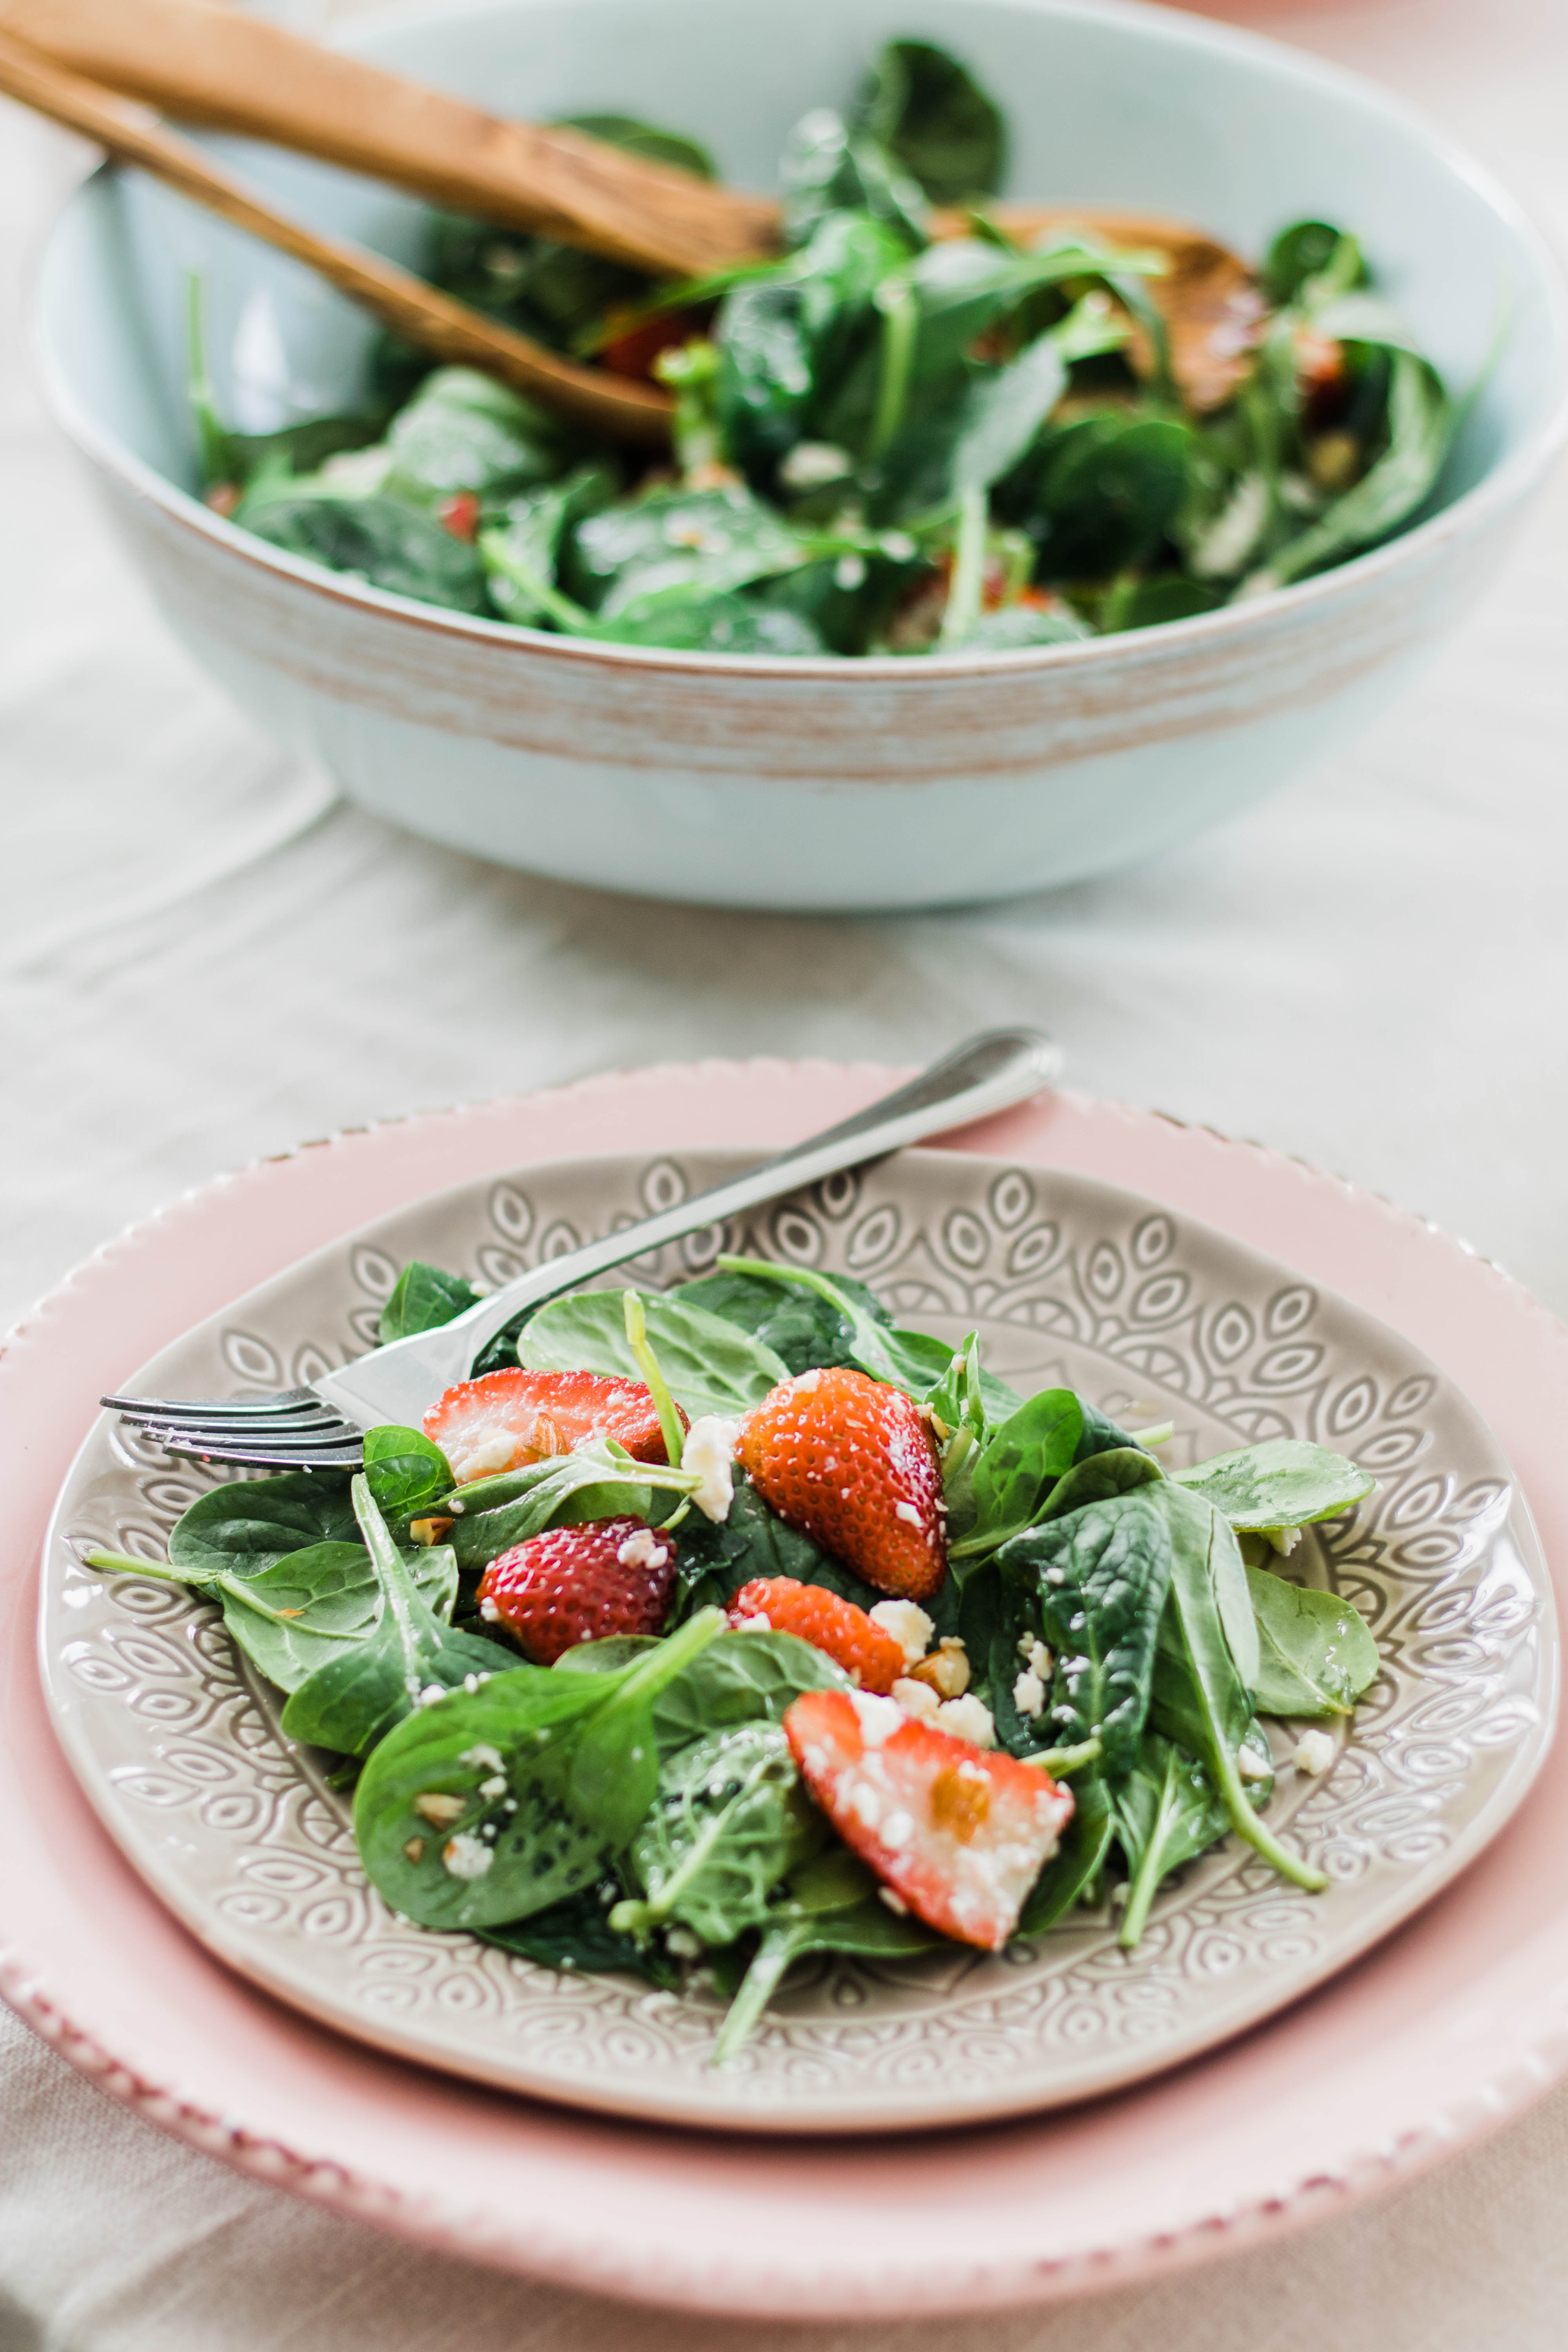 Strawberry Spinach Salad with Balsamic Dressing #salad #healthyrecipes #strawberry #dinnerrecipes #foodphotography